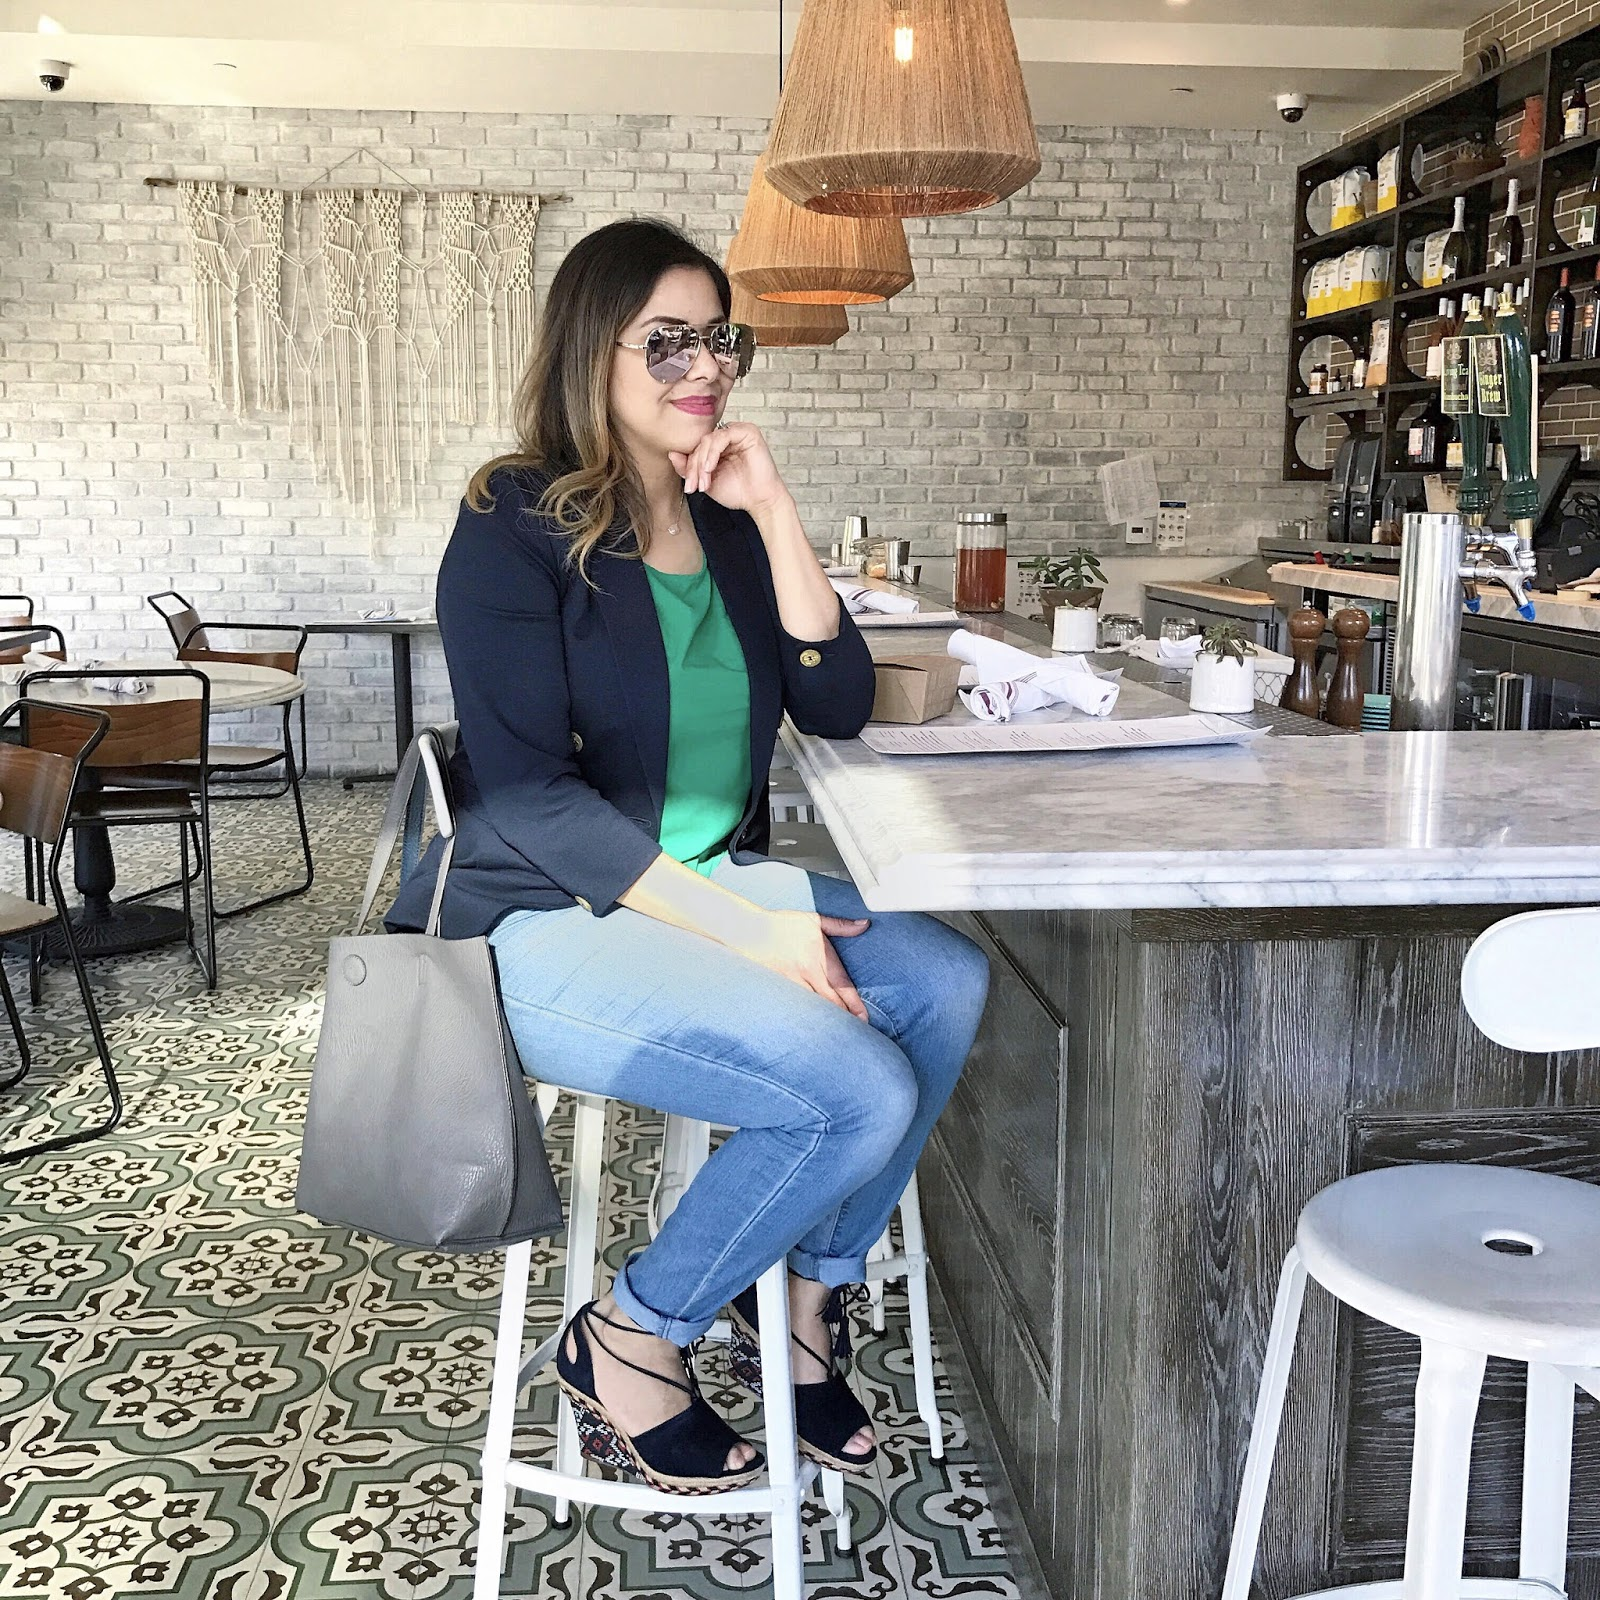 Cafe Gratitude San Diego, Cafe Gratitude fashion blogger, fashion blogger in san diego, instagram hot spot in san diego